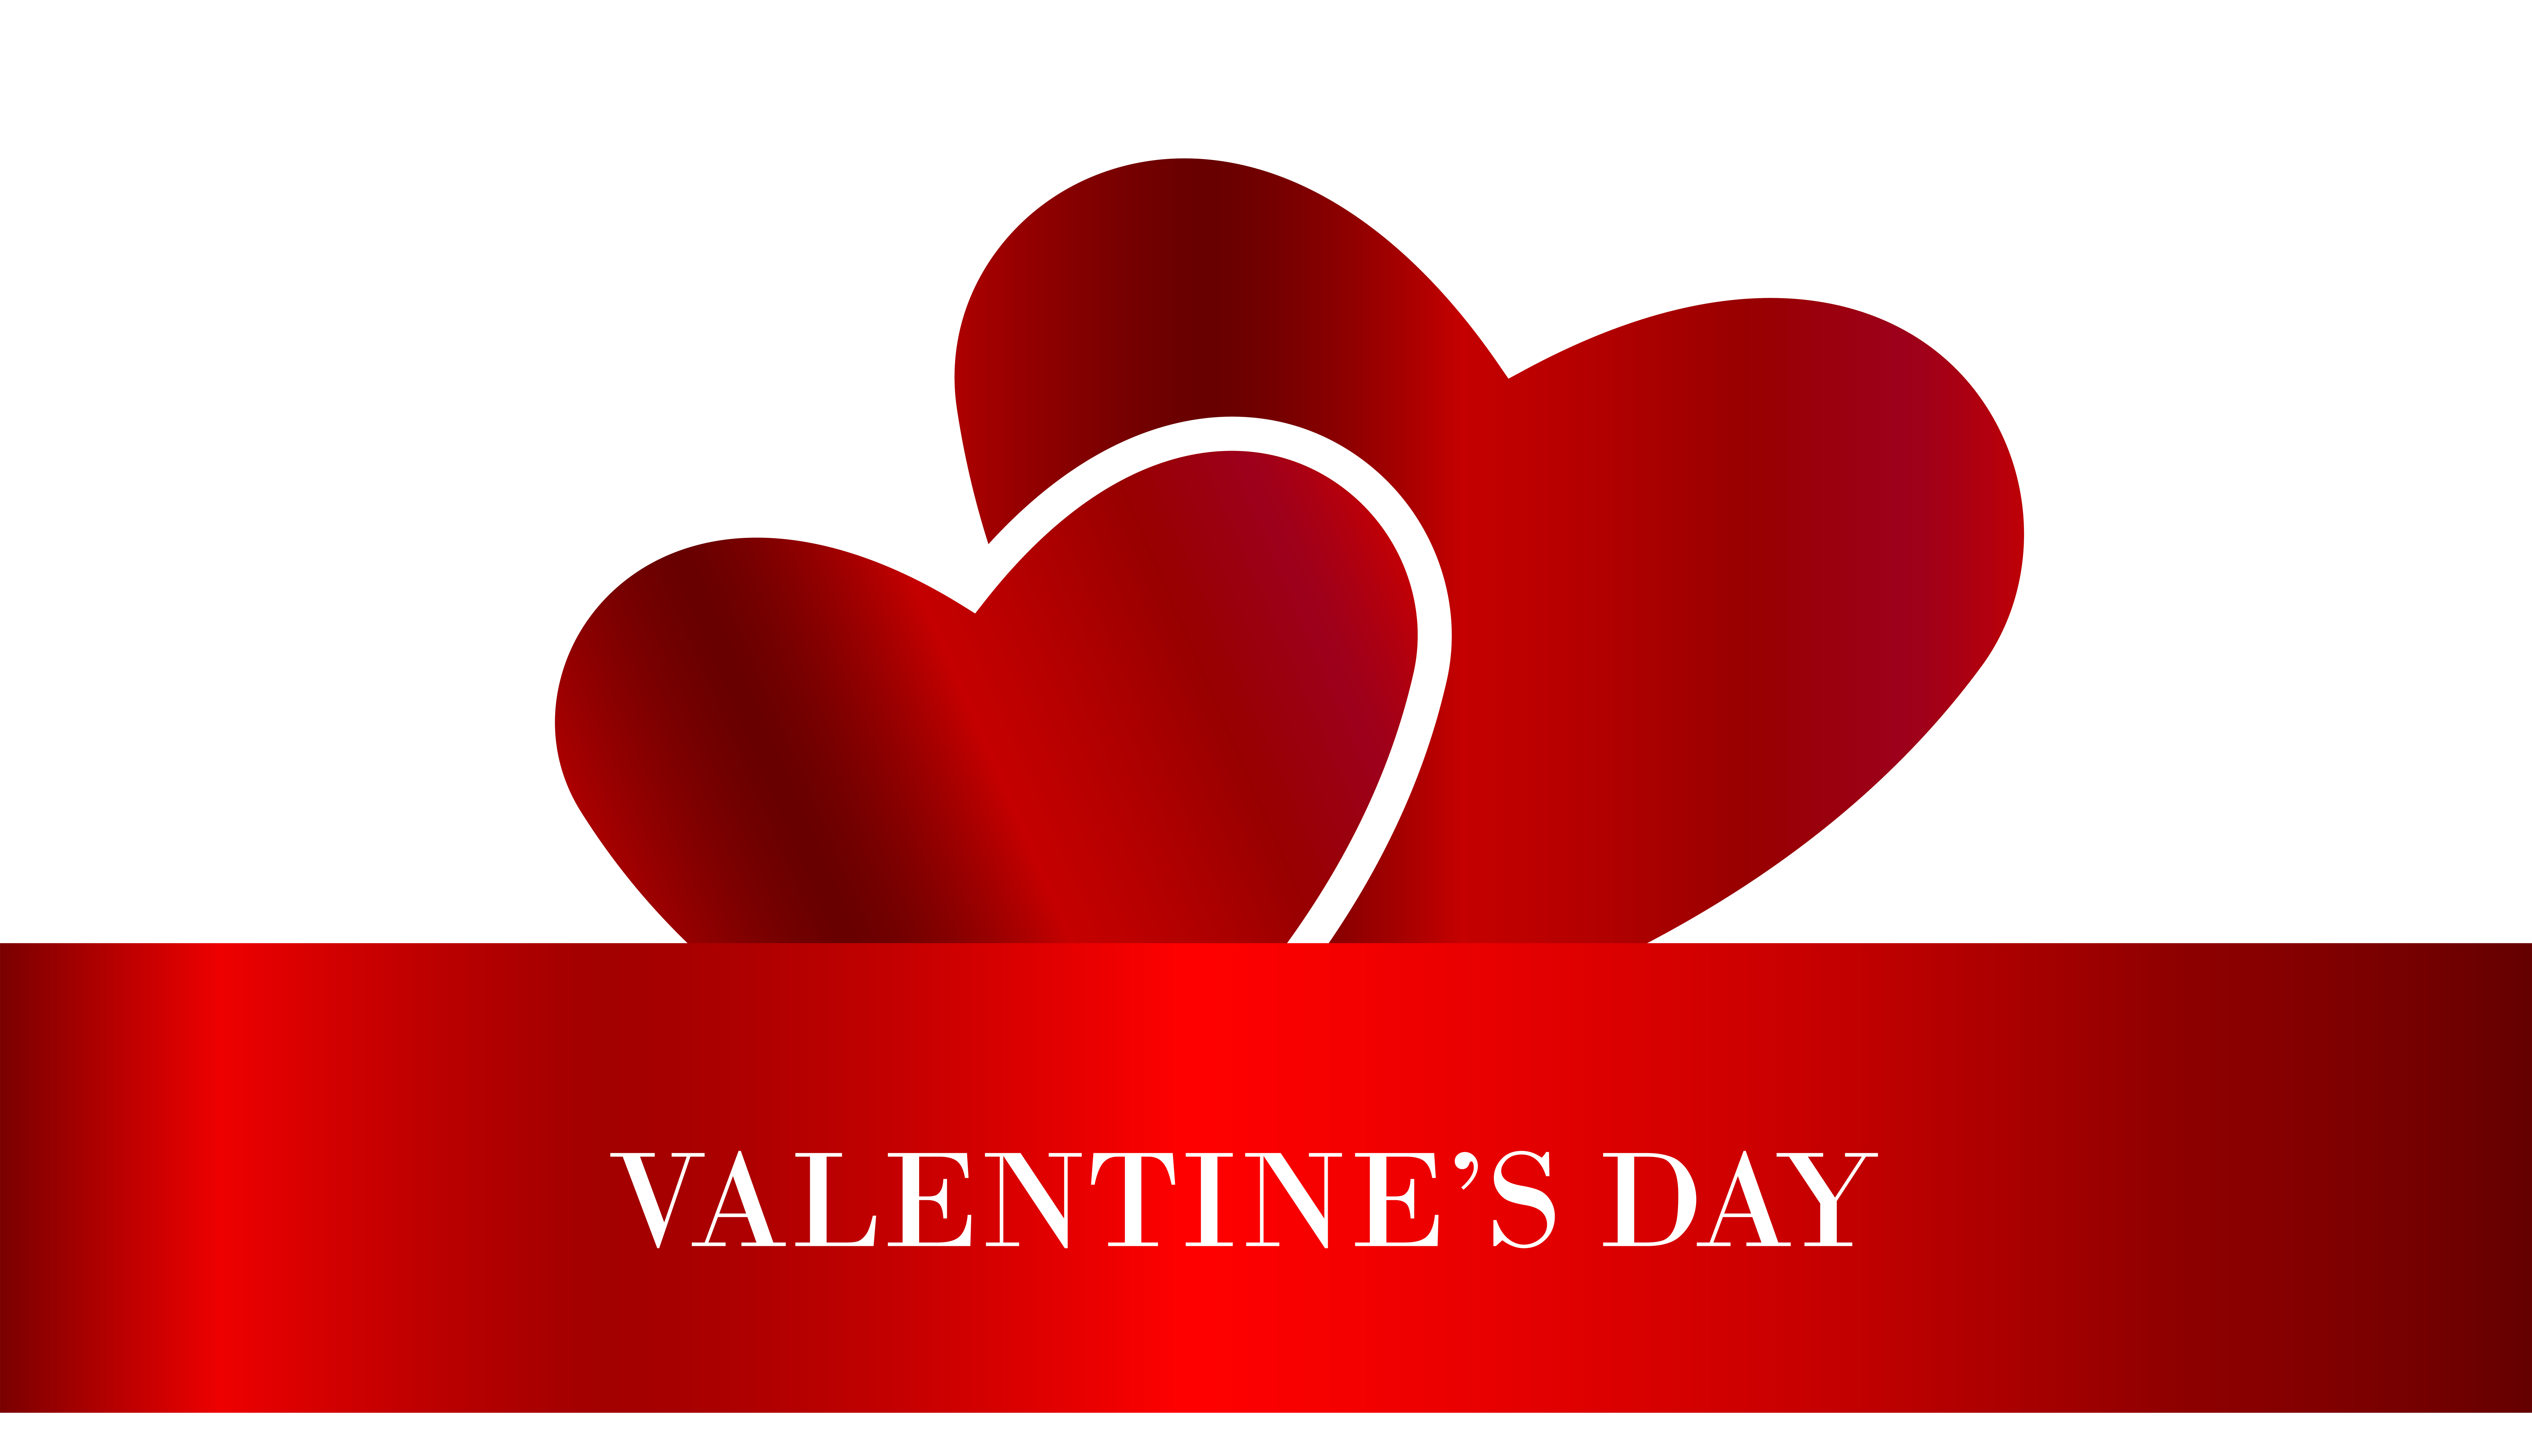 Valentine's Day Hearts Transparent PNG Clip Art Image.